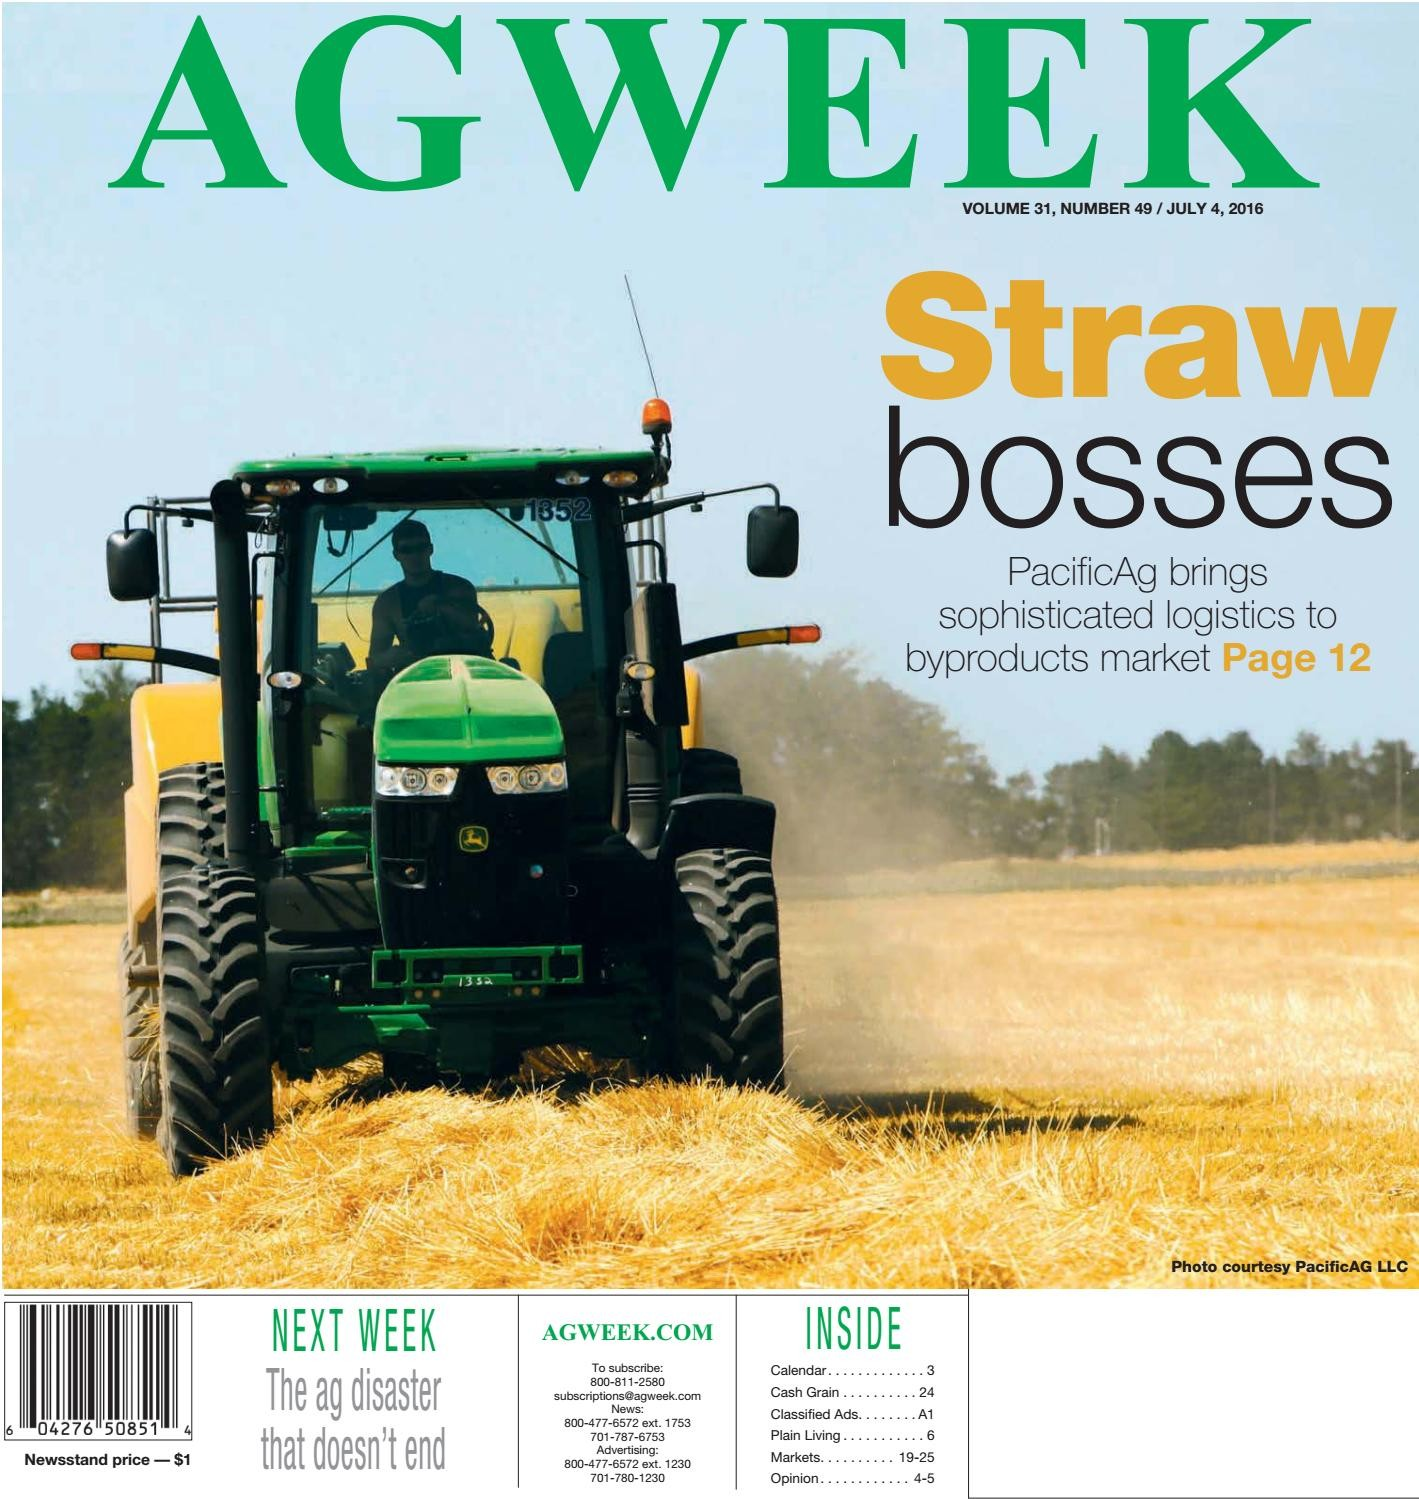 March 1979 Calendar Más Actual July 4 2016 Agweek by Prairie Business Magazine issuu Of March 1979 Calendar Más Recientemente Liberado Telugu Localnews Telugulocalnews On Pinterest